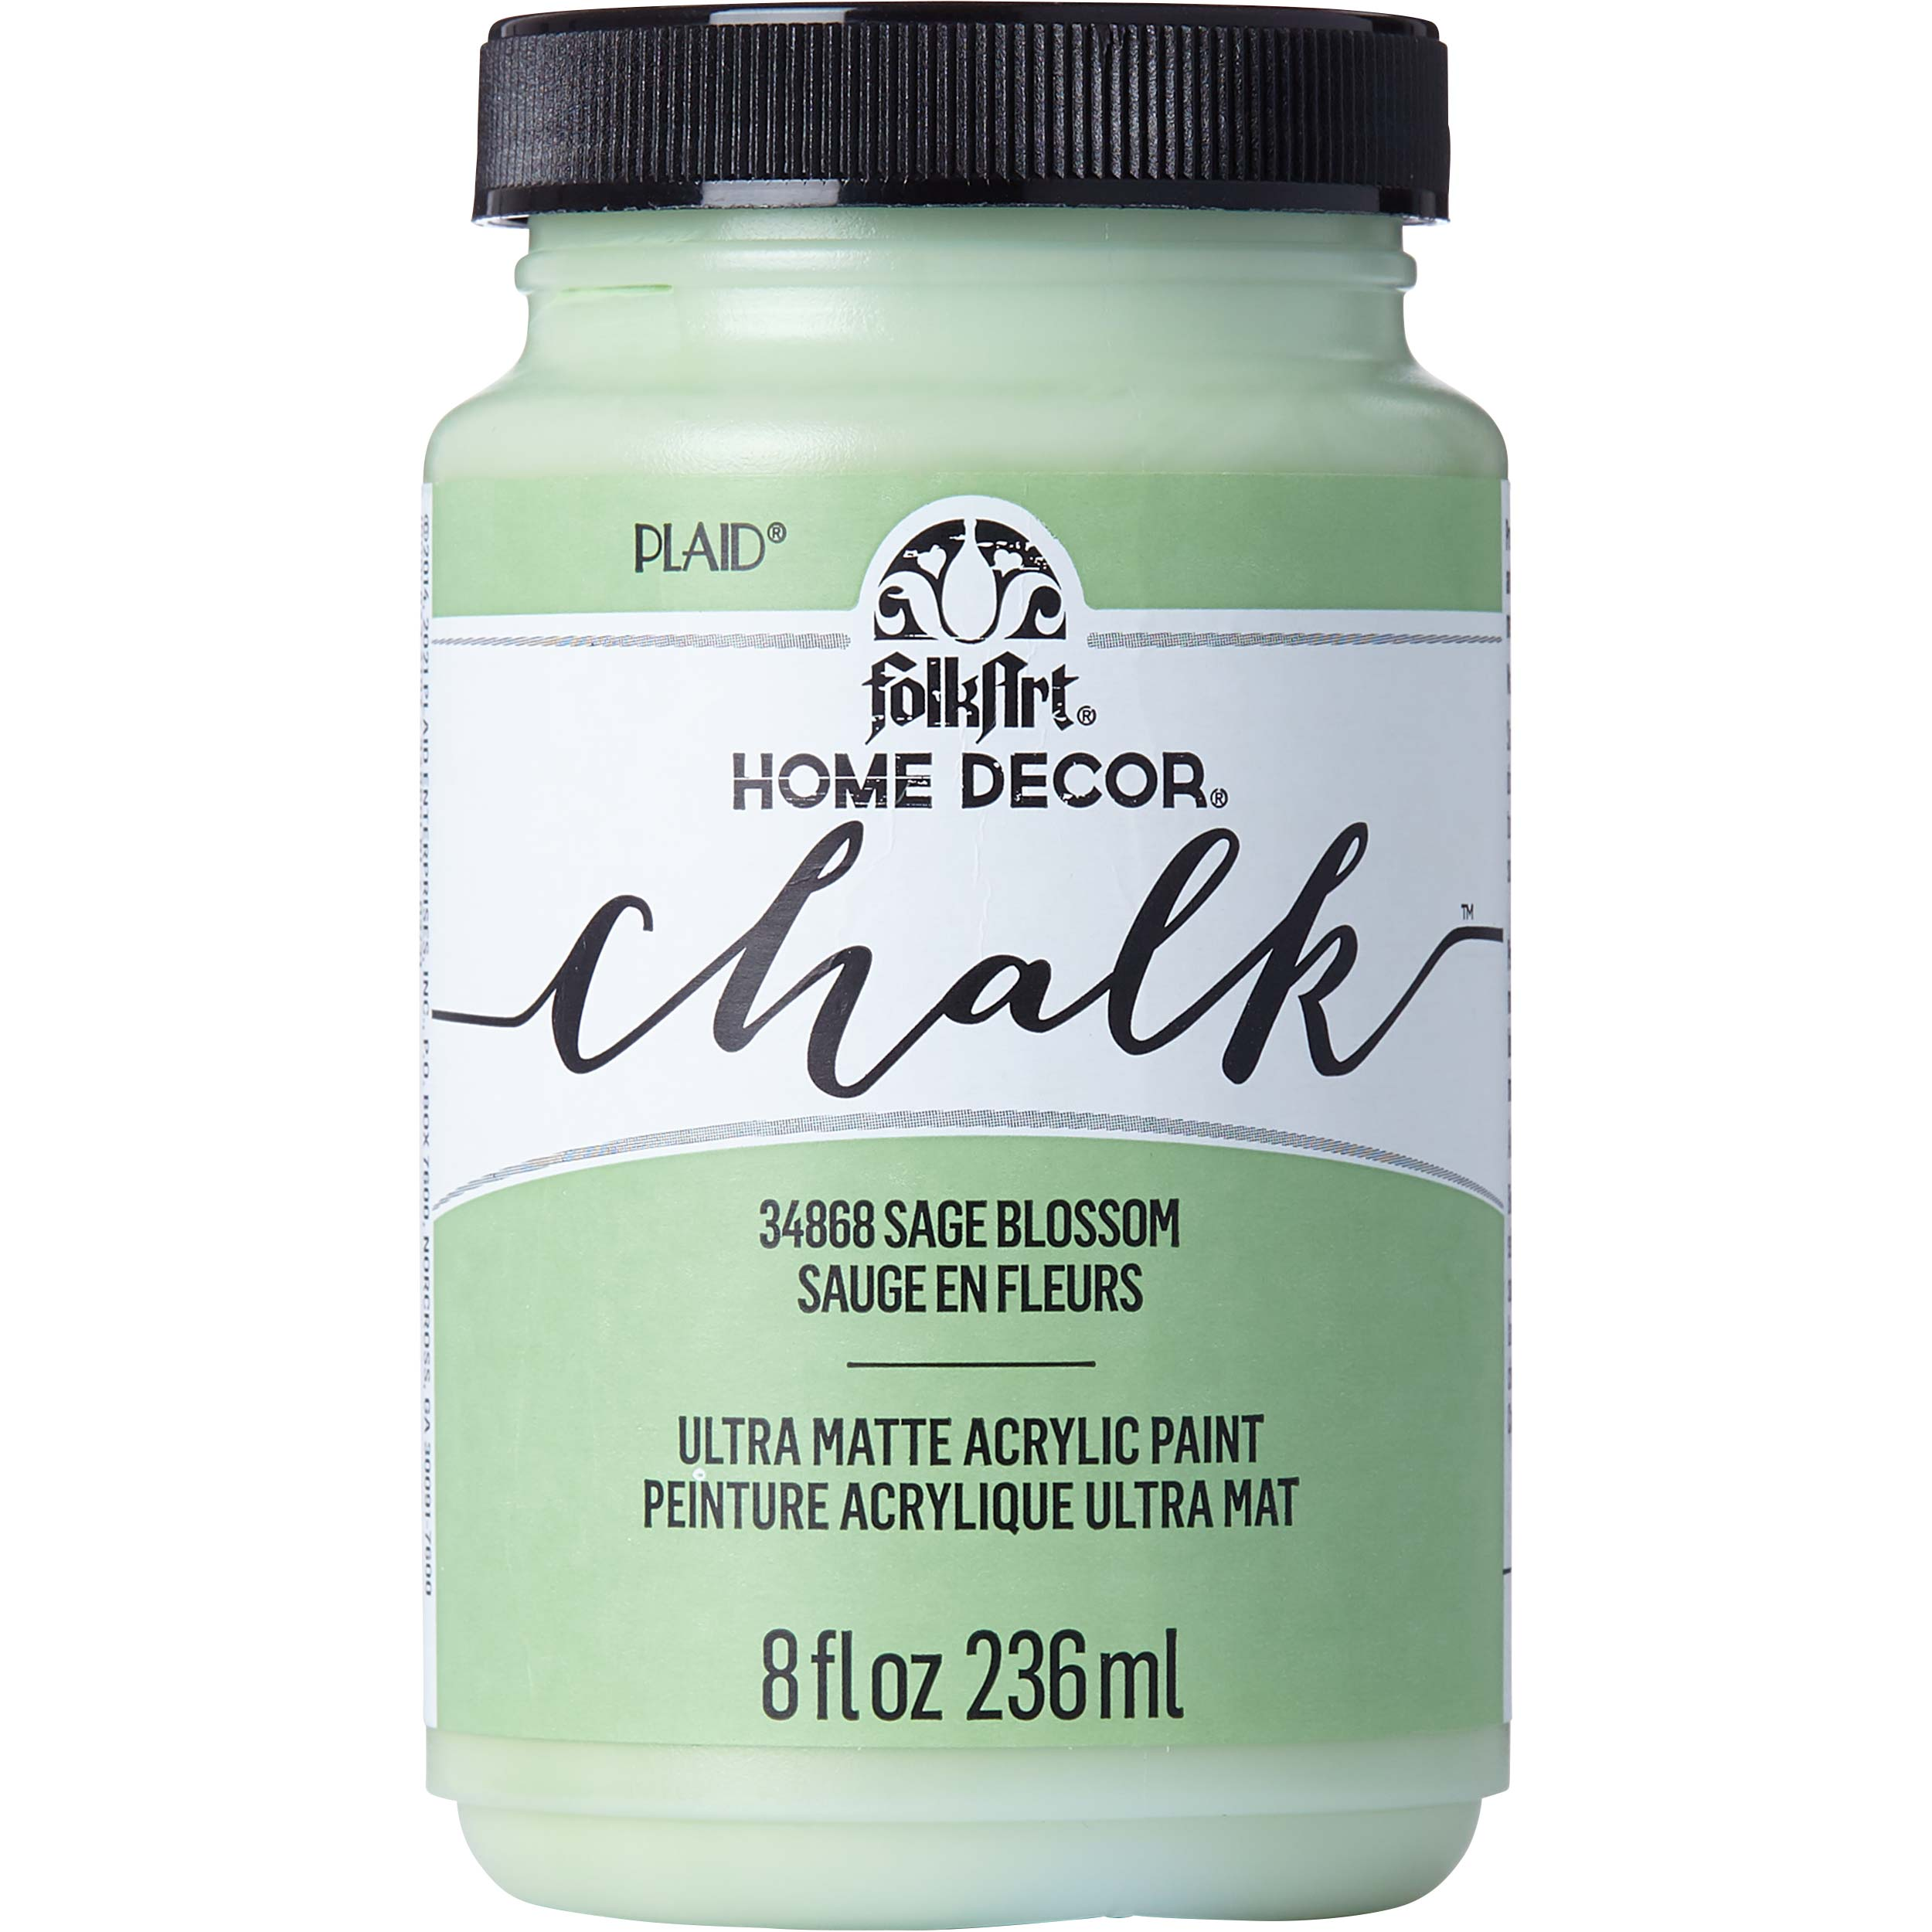 FolkArt ® Home Decor™ Chalk - Sage Blossom, 8 oz.